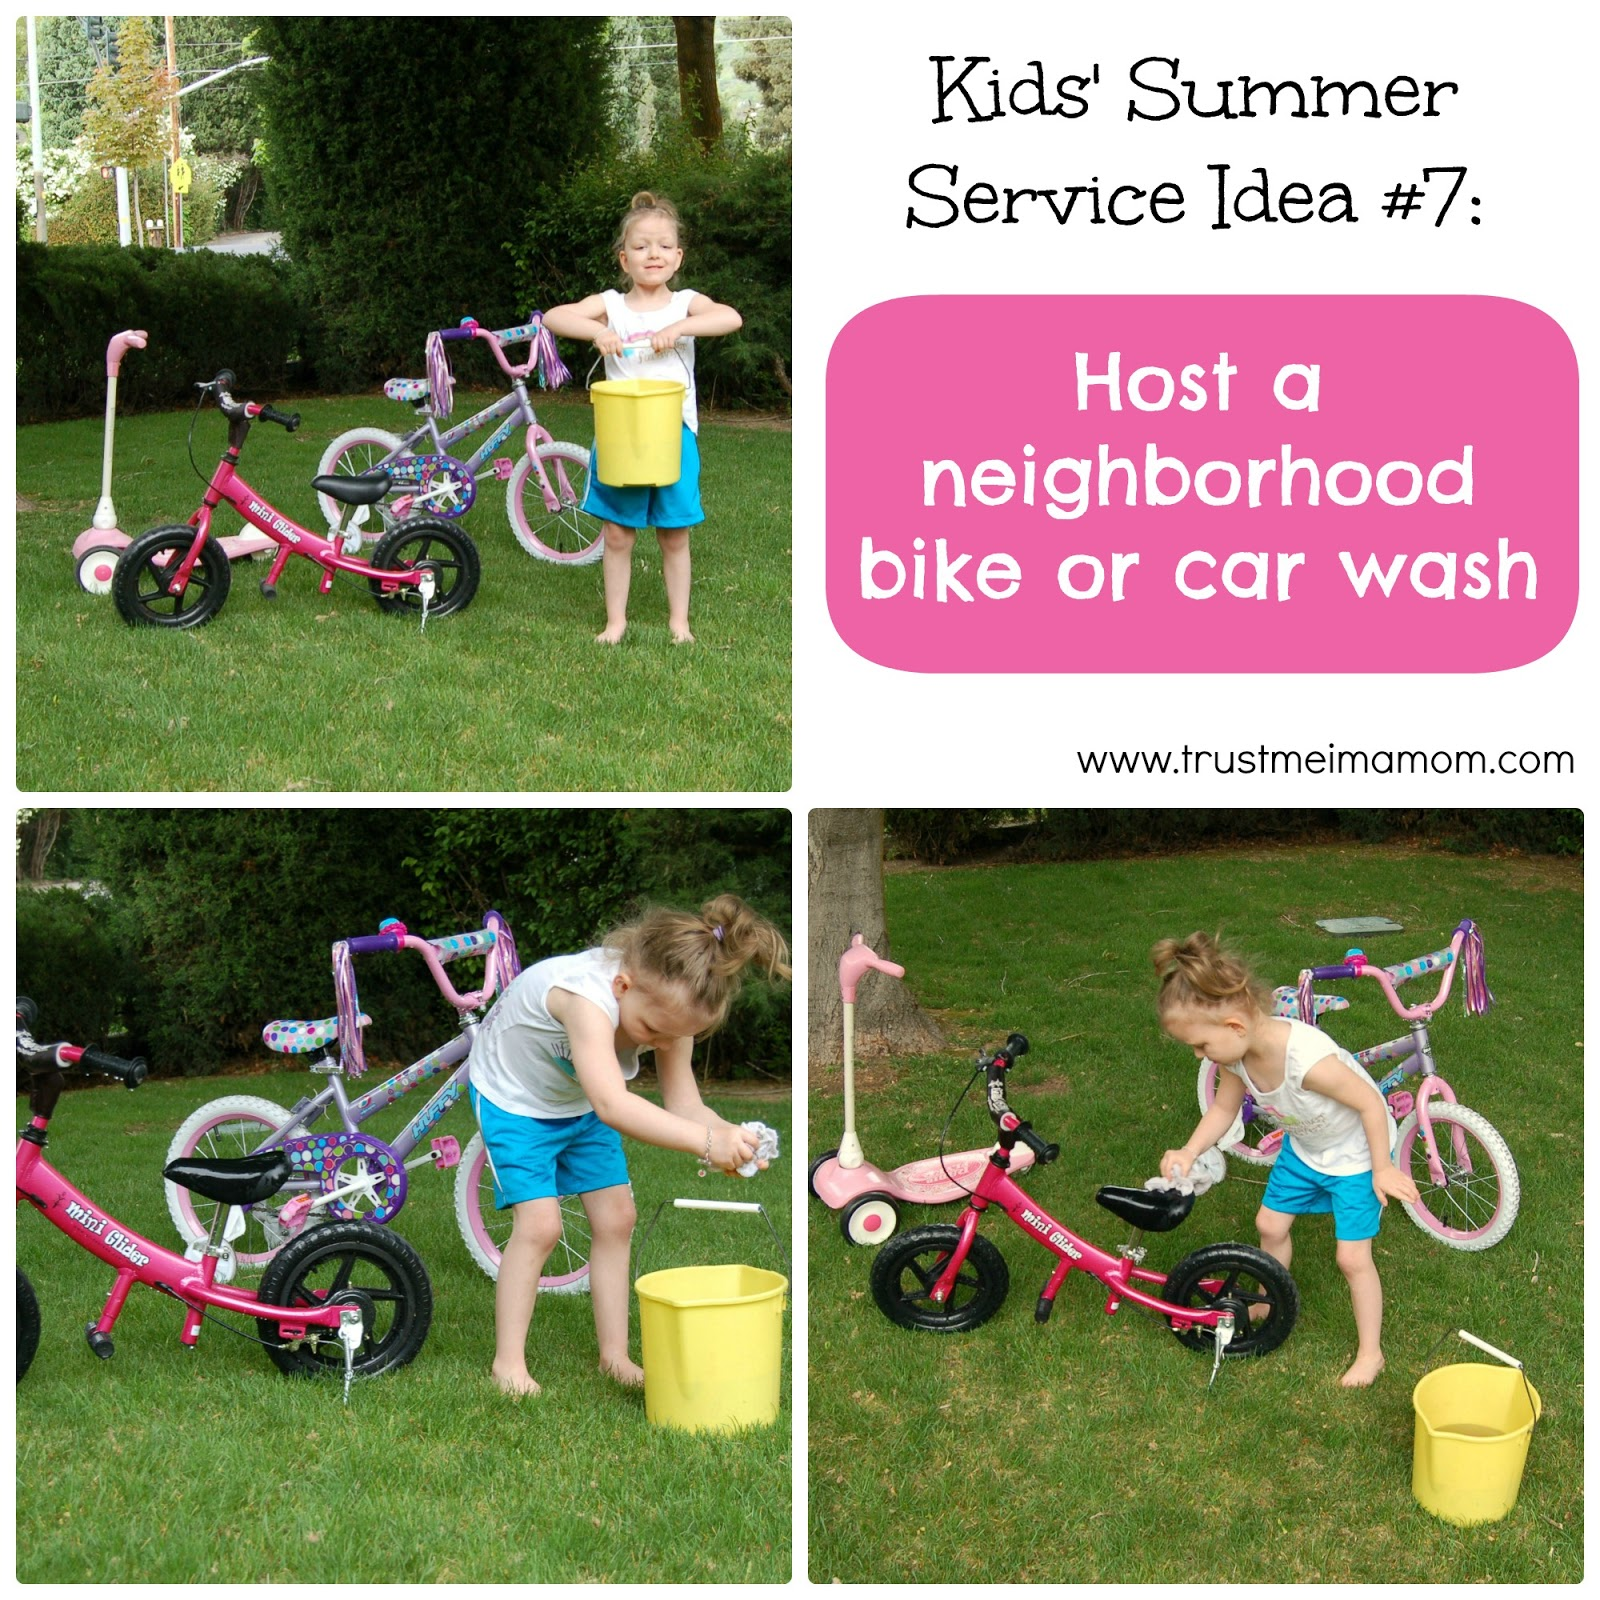 Fun Ways to Serve with Your Kids This Summer: Idea #7 - Host a neighborhood carwash or bike wash... fun!